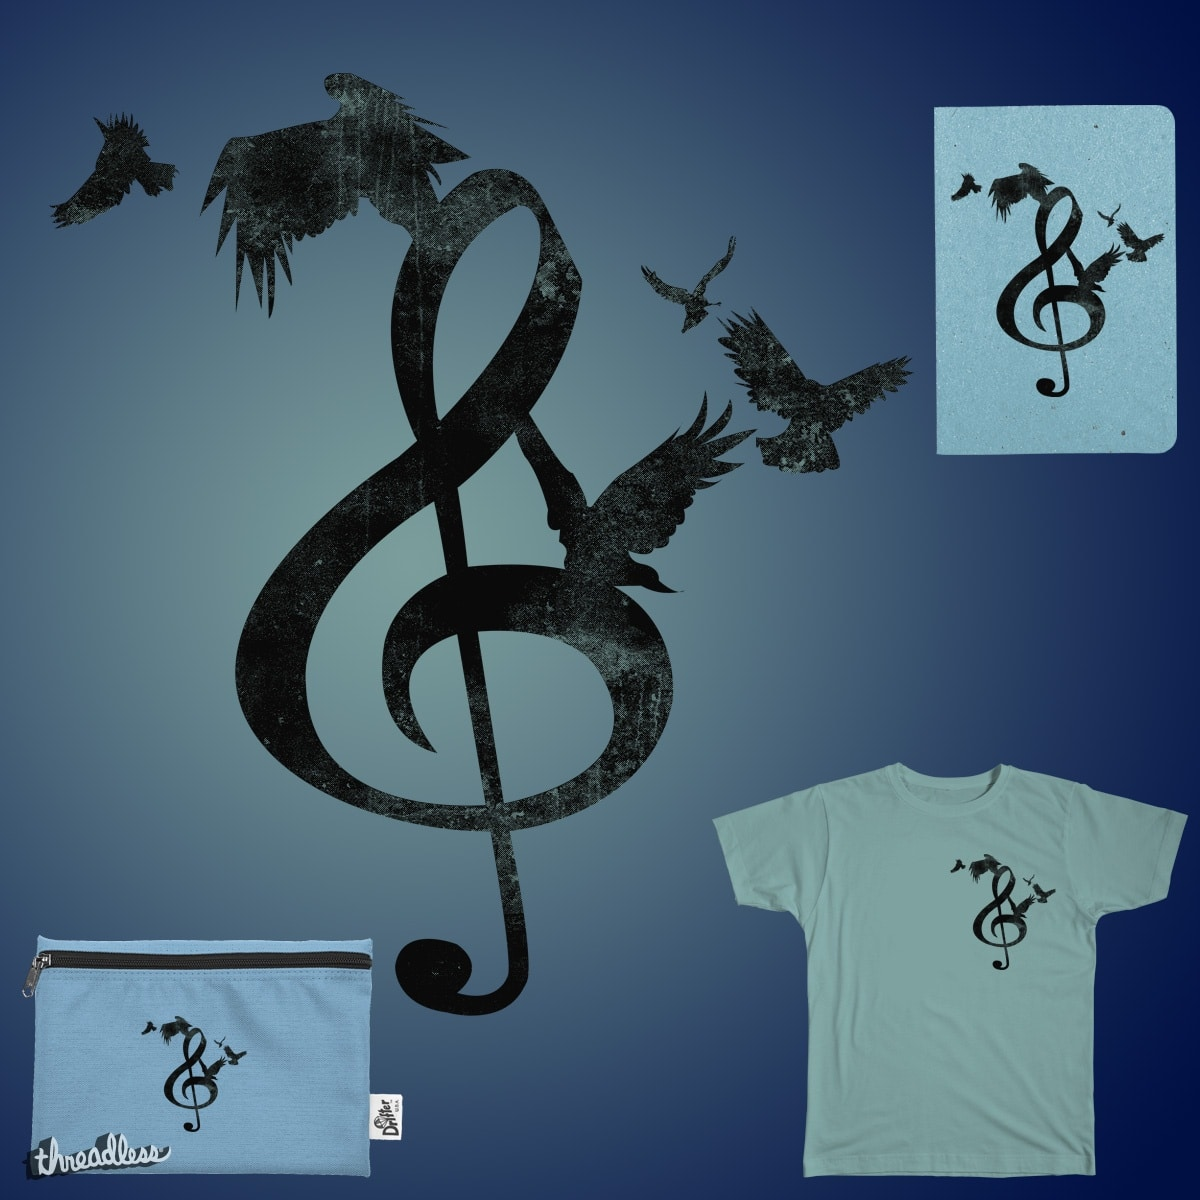 THE CROW SOUND by Max439 on Threadless